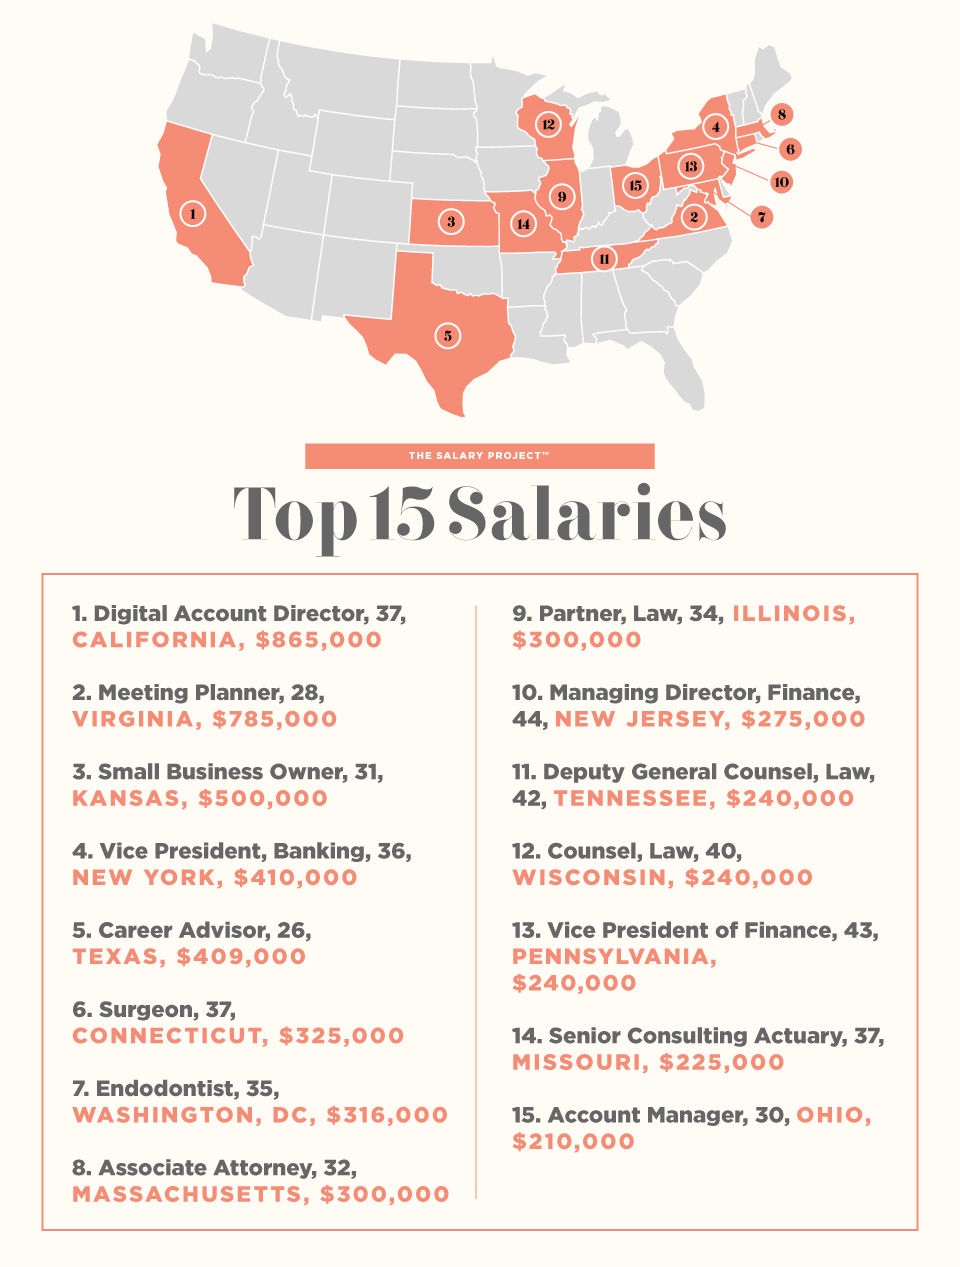 The Salary Project | The Highest Salaries (So Far) From Across the